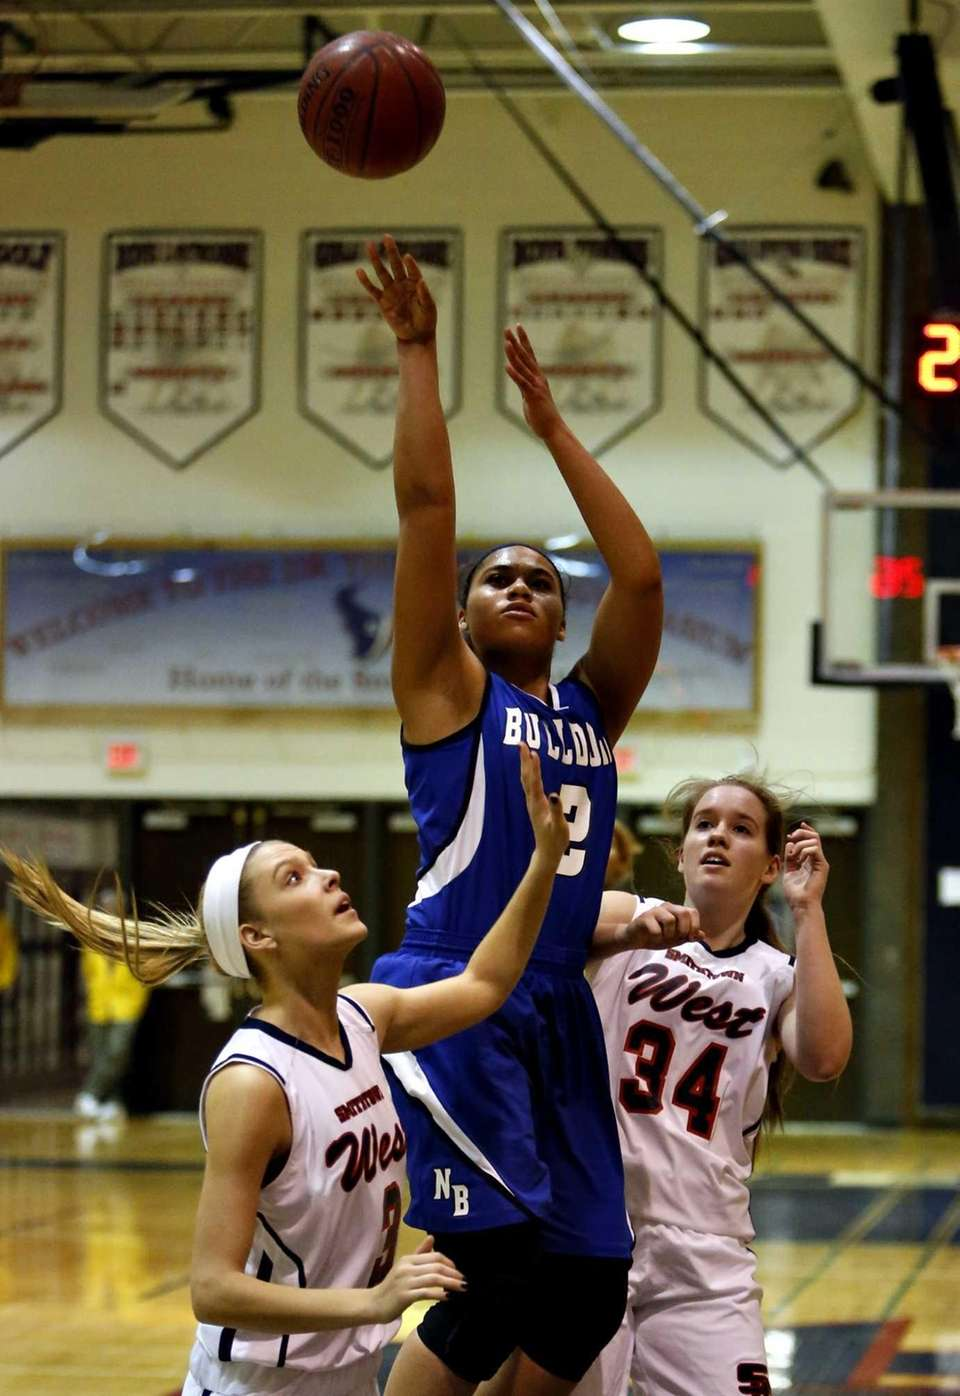 North Babylon's Brianna Jones (2) takes a shot